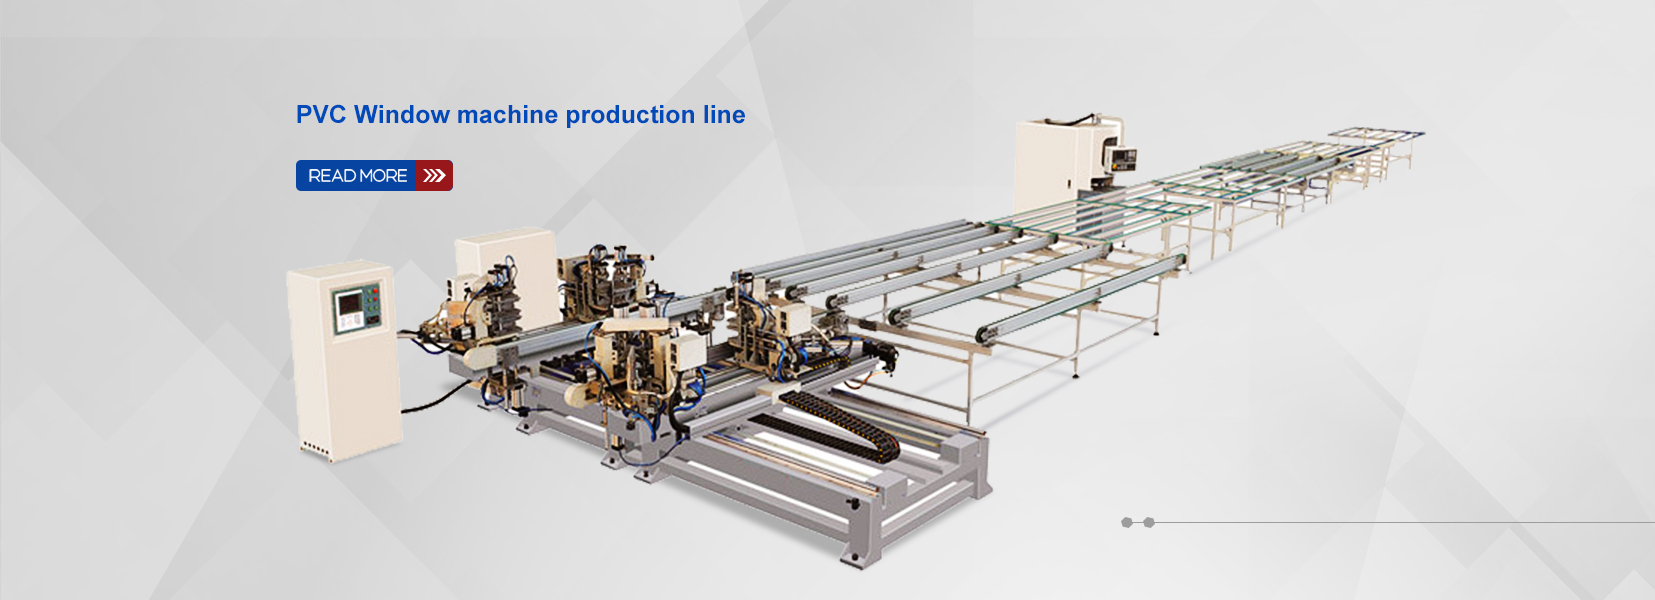 PVC Window machine production line